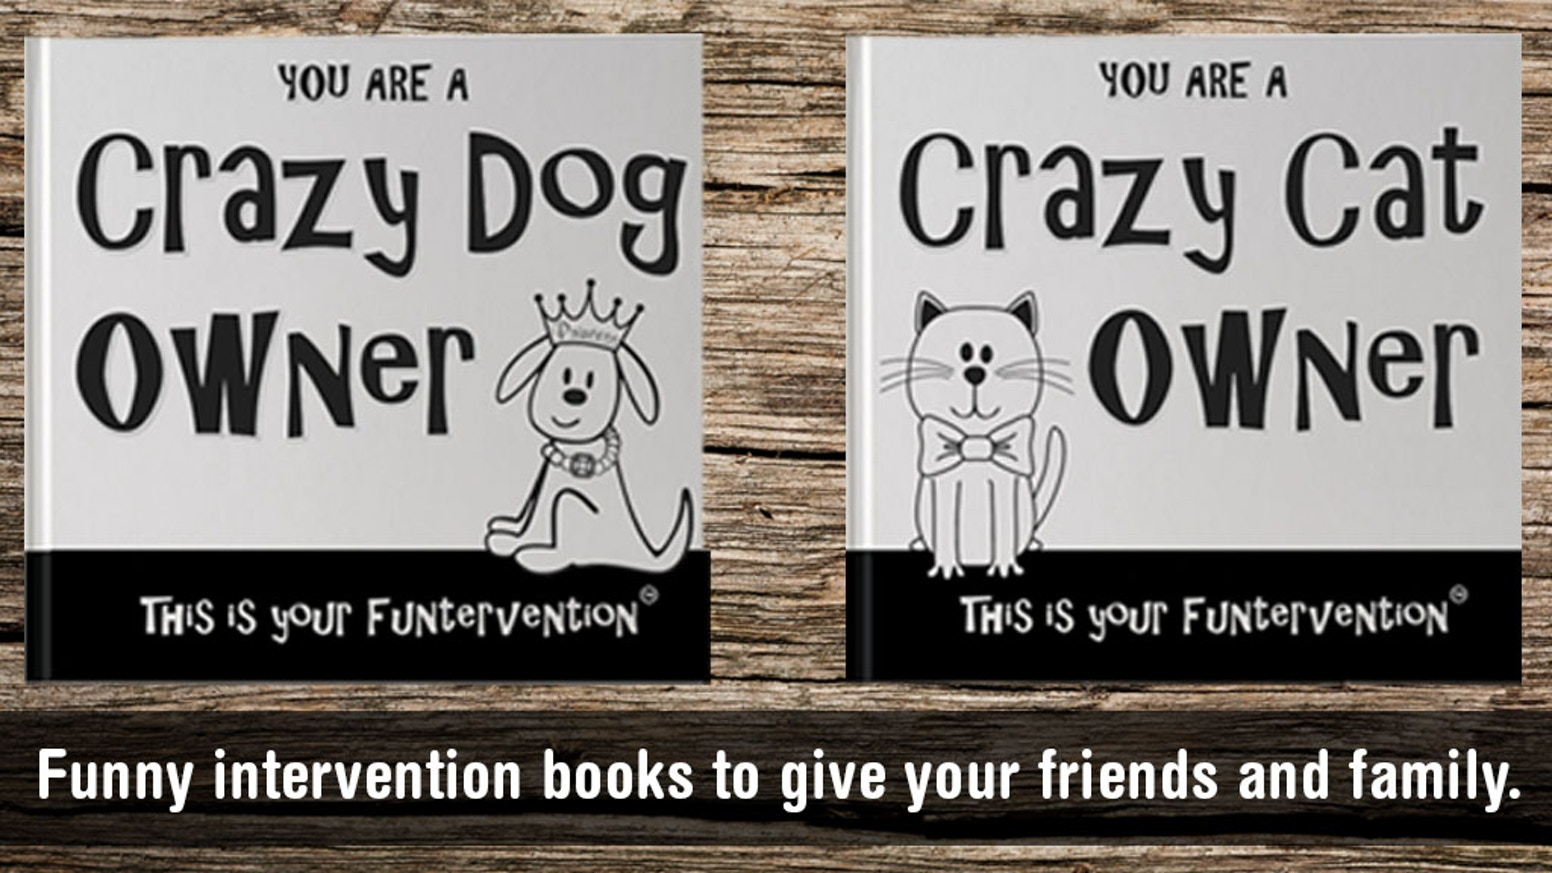 Funterventions™ say the things you've always wanted to say in a funny, honest, and lighthearted way.